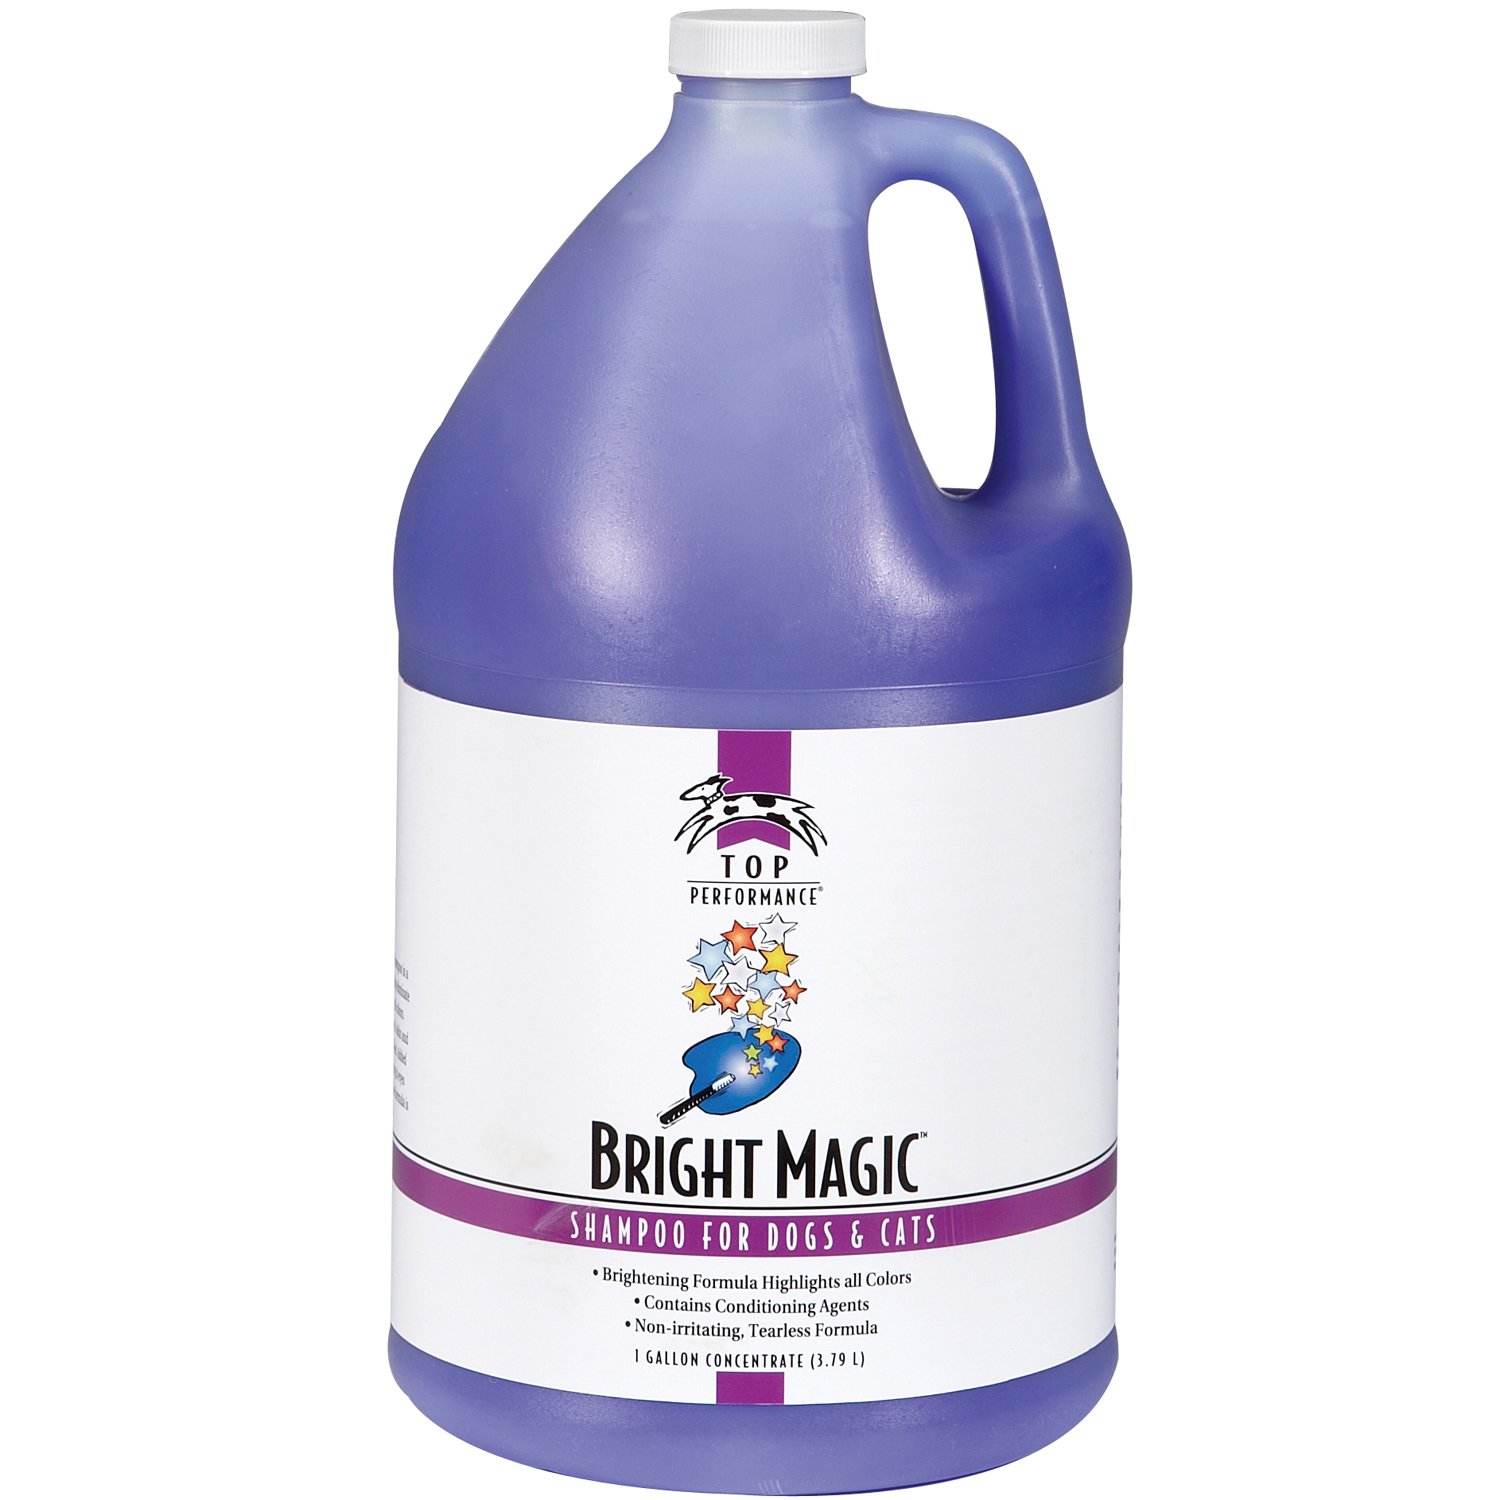 Top Performance Bright Magic Dog and Cat Shampoo, 1-Gallon